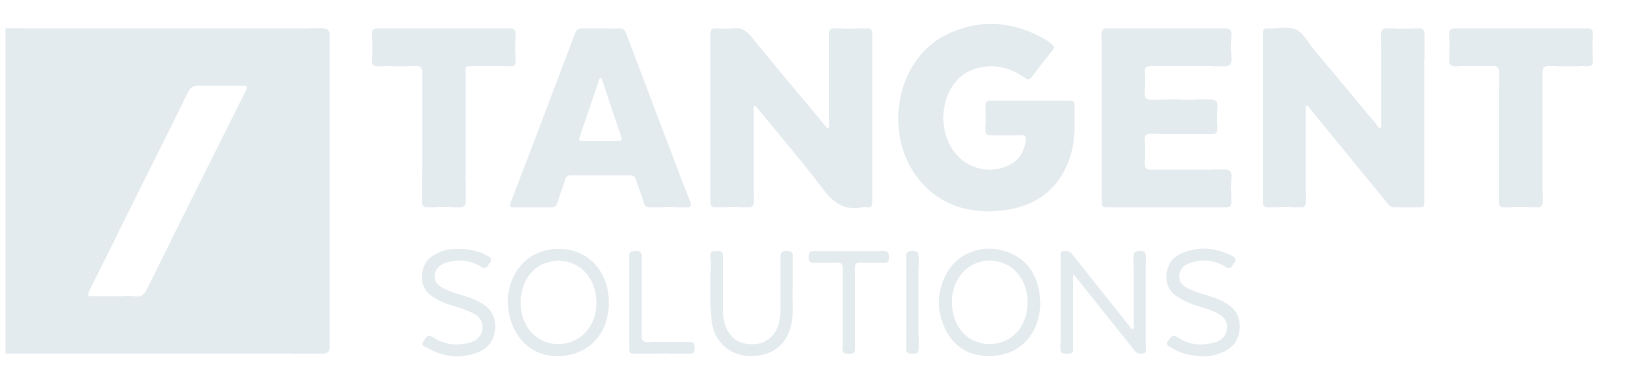 Tangent Solutions logo. Tangent Solutions uses OfferZen to source developers.